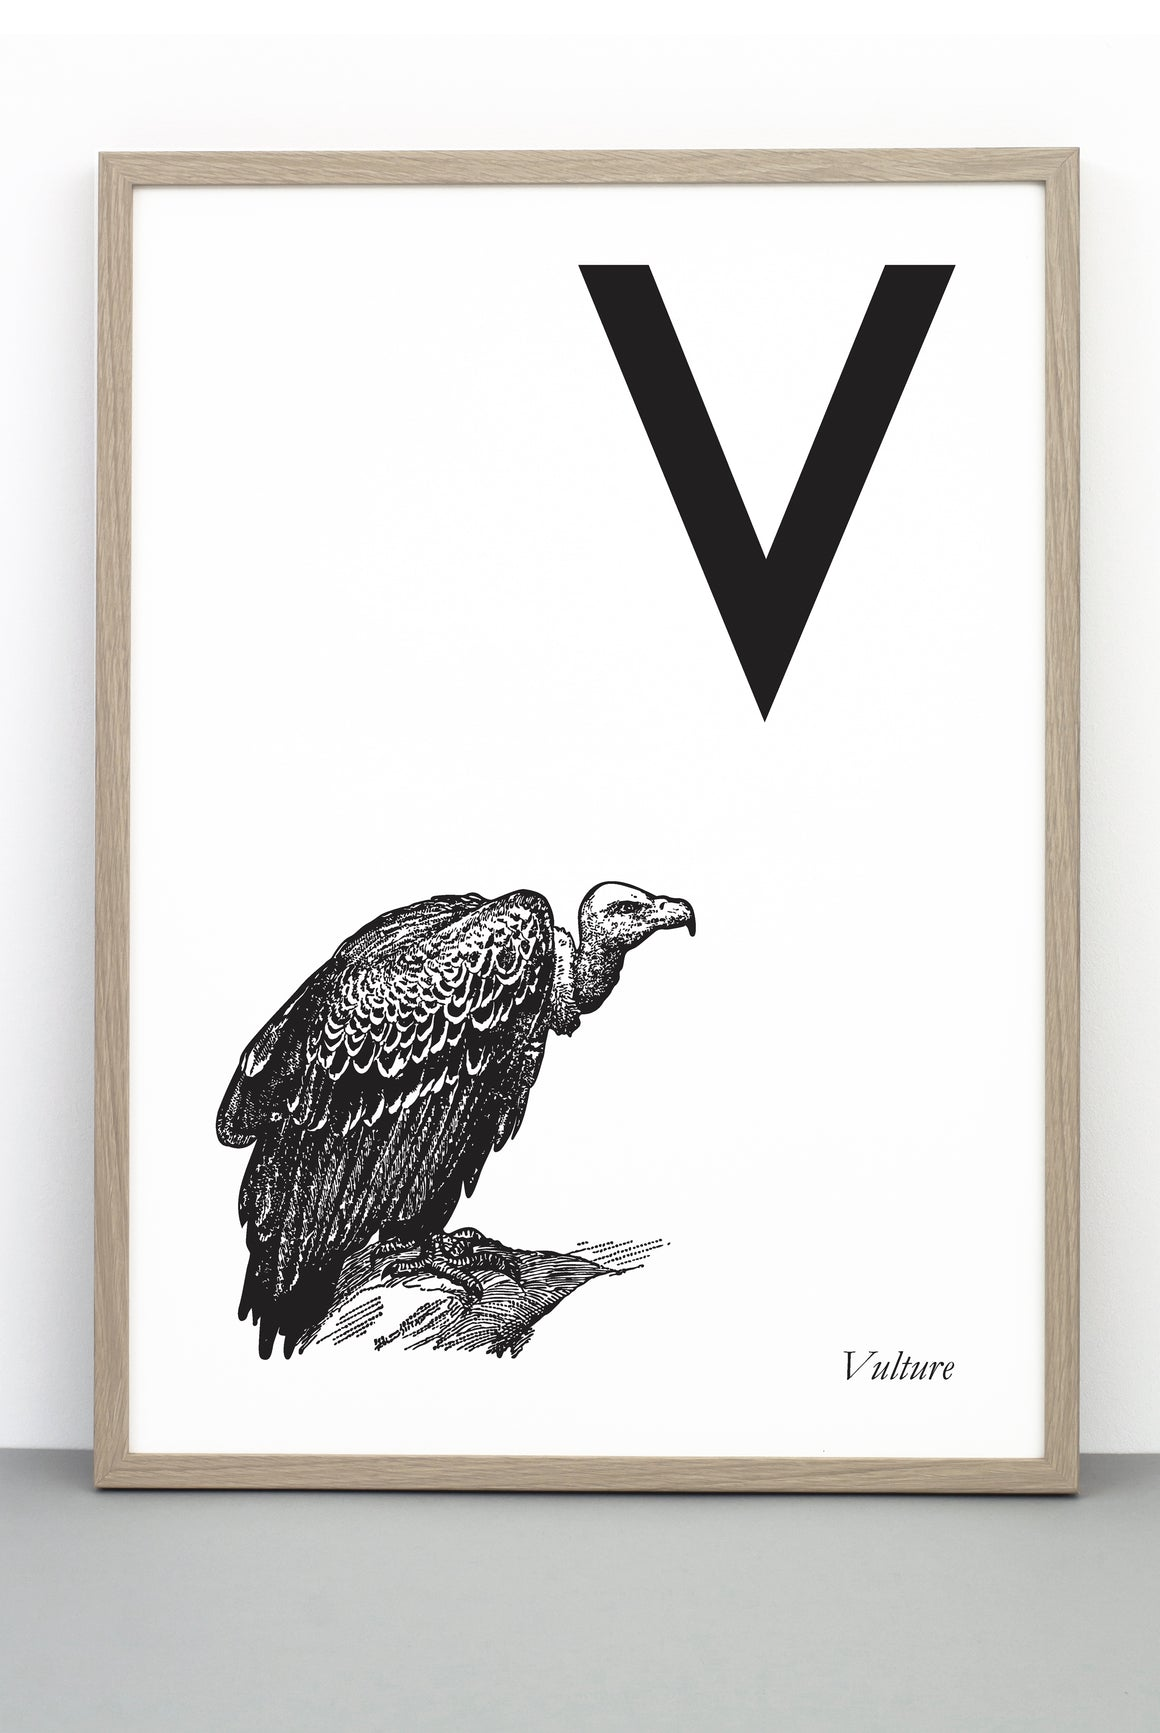 ANIMAL LETTER V, VULTURE, V DOWNLOADABLE PRINT